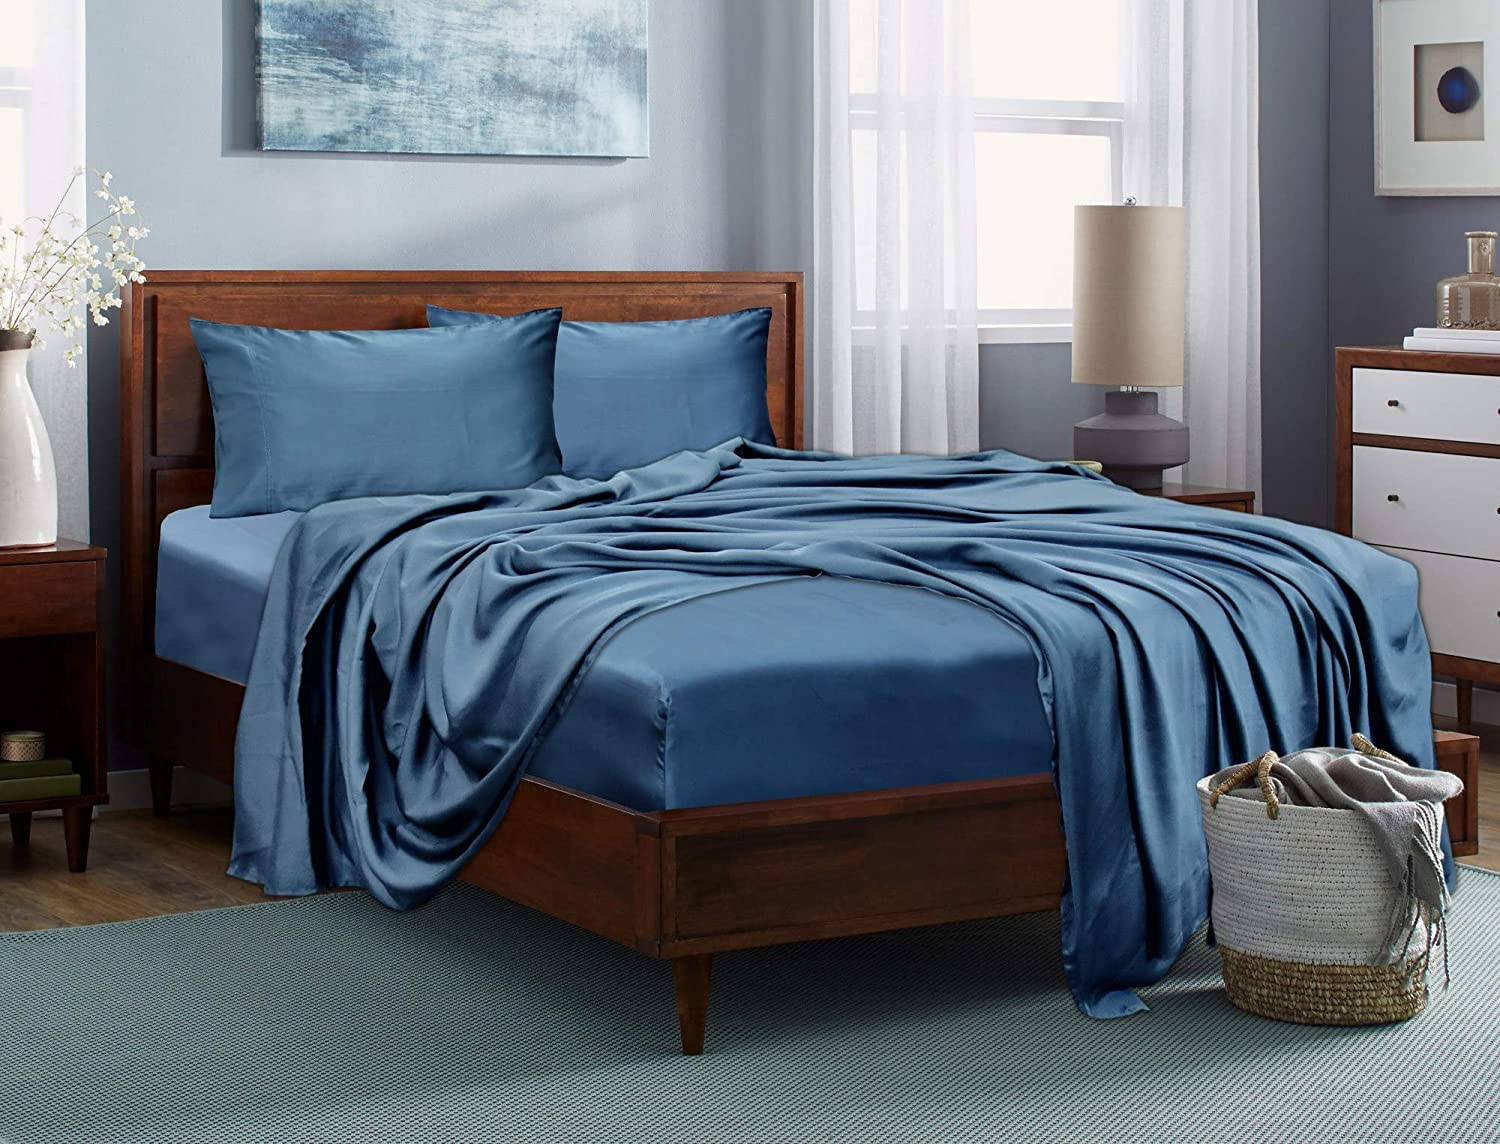 LINENWALAS 100% Tencel Duvet Cover Set with Zipper Closure - Softest Cooling Eucalyptus Bedding (King/California King, Bahamas Blue)